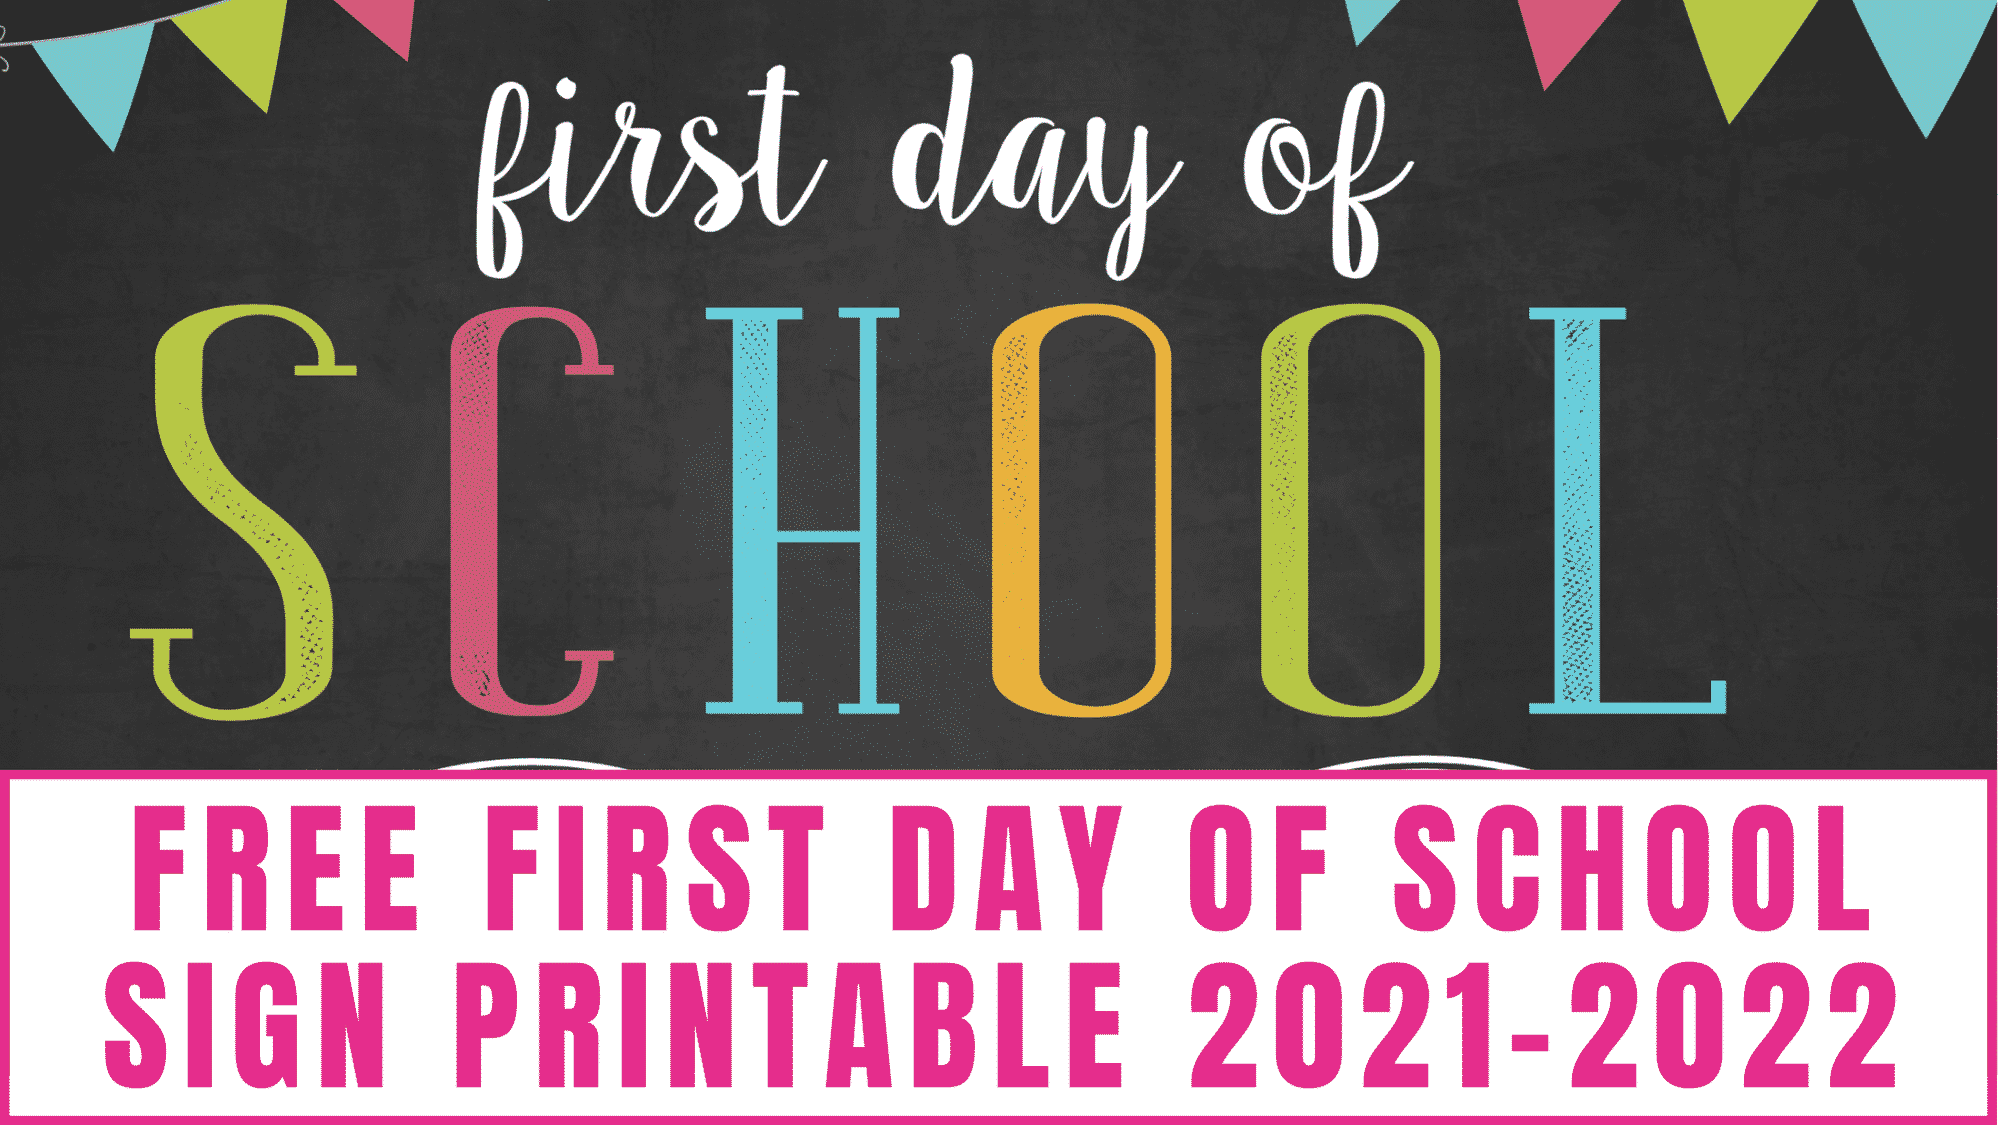 Are you organized and ready for the big day? In addition to snagging a student planner printable which includes a helpful weekly to do list template printable, be sure to download this free first day of school sign printable 2021-2022 for your kid to hold while you take their picture.